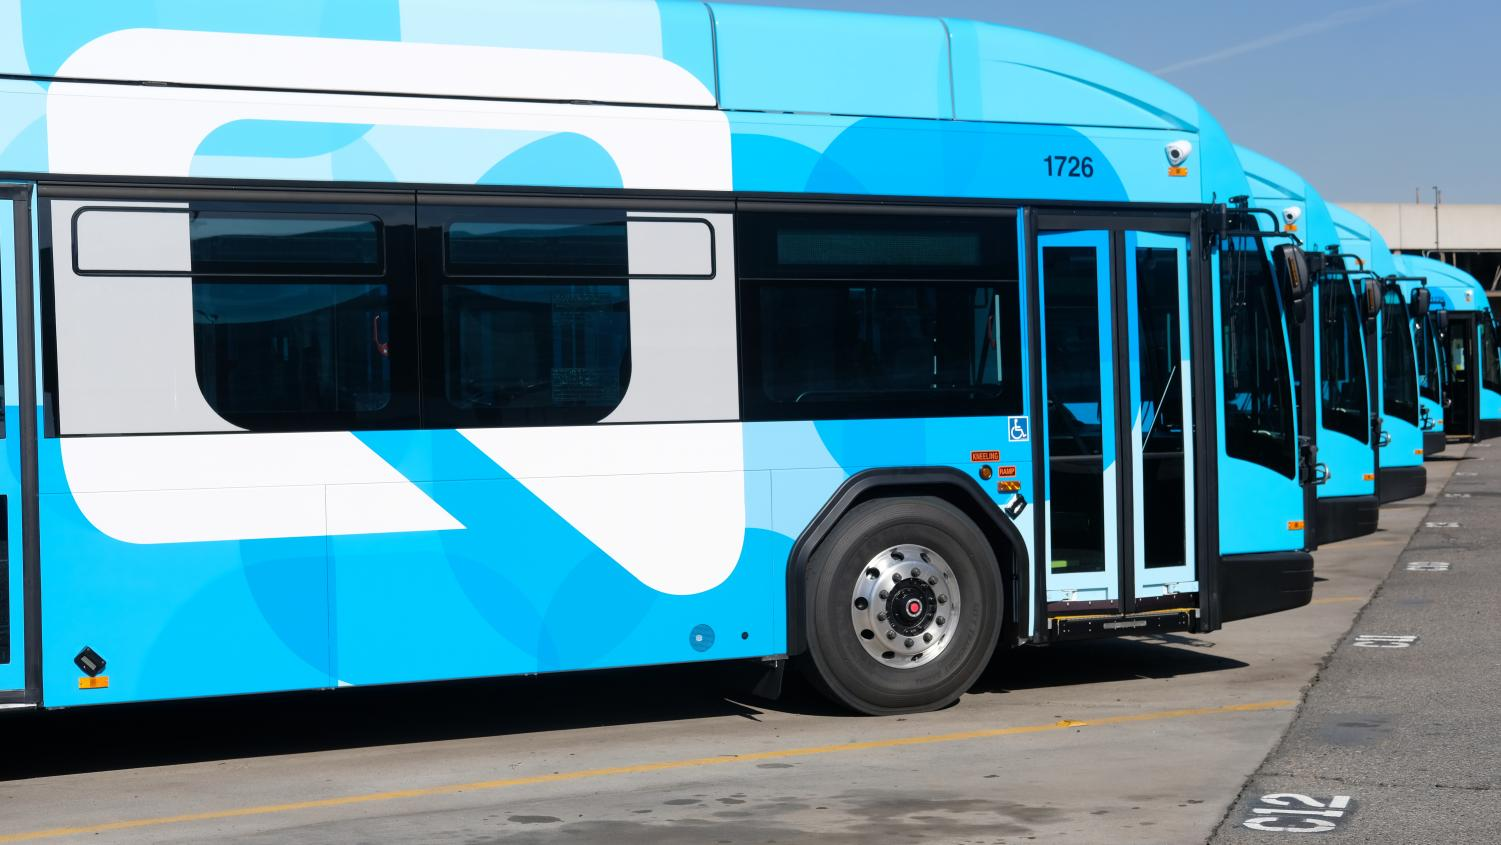 The new Bus Rapid Transit will feature off-board fare purchase, shorter wait times, and reduced travel time at the same price as a regular FAX bus.